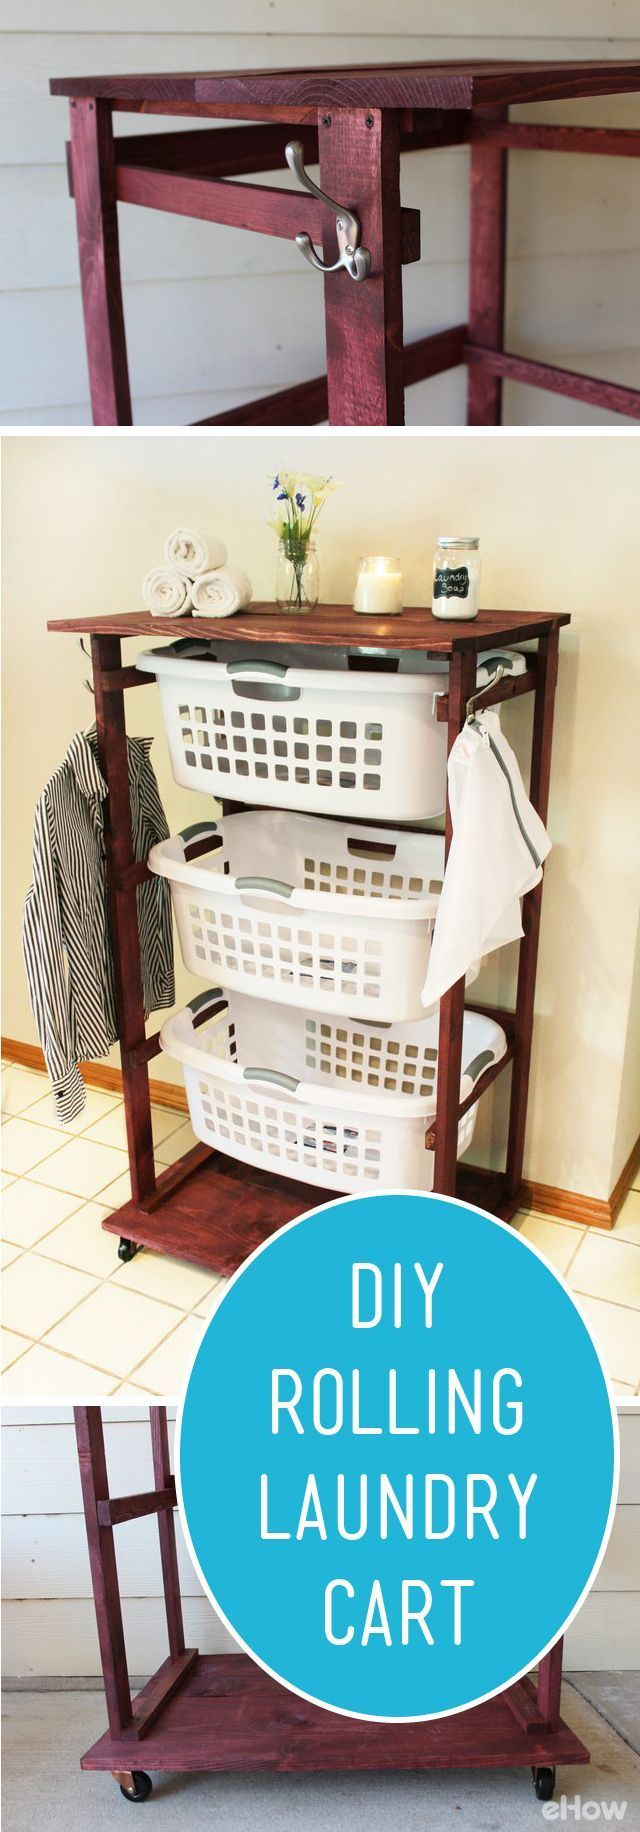 A rolling laundry cart allows you to push around three laundry baskets at once, cutting down on time and labor. Simply roll your baskets from room to room and with ease - no lifting big loads required.